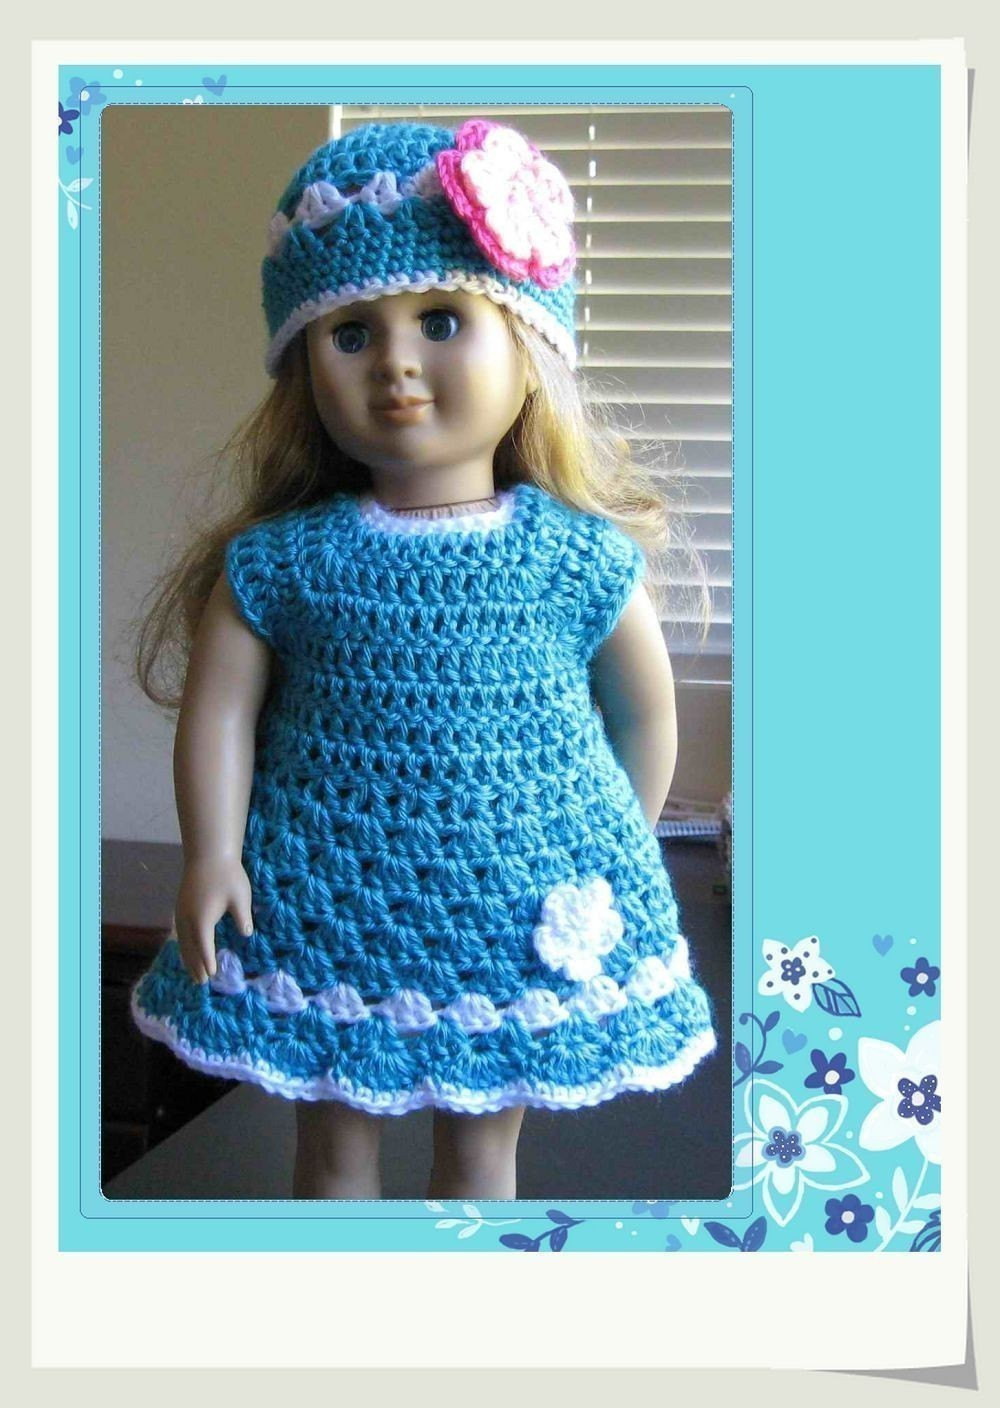 Unique Pattern Crocheted Doll Clothes Dress for American Girl Gotz American Girl Doll Patterns Of Delightful 40 Photos American Girl Doll Patterns